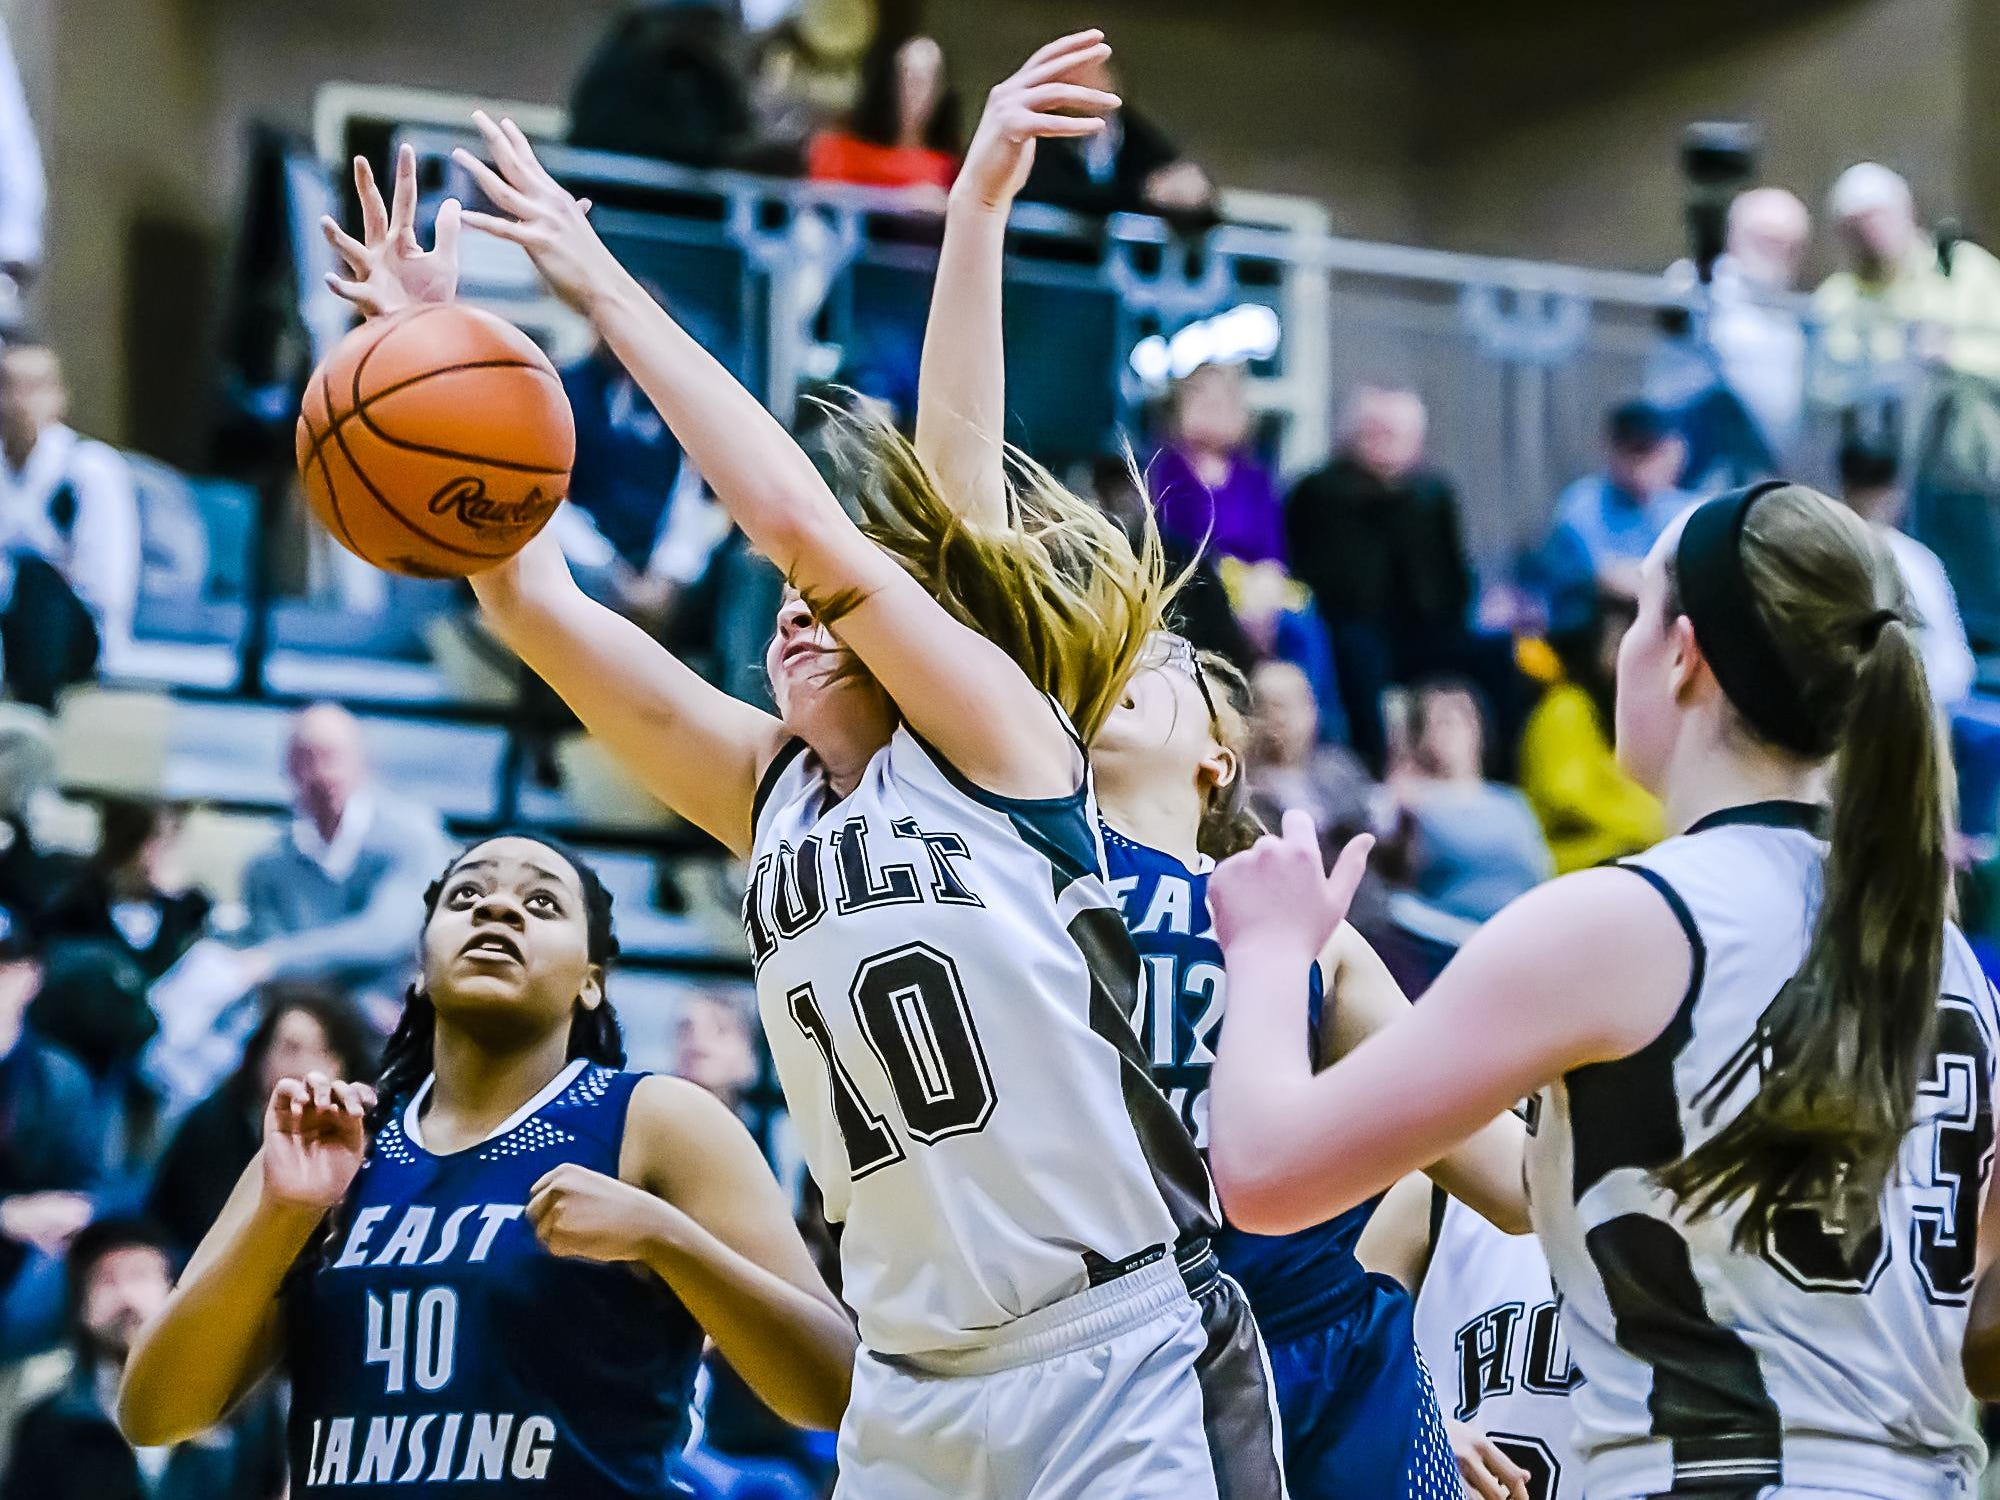 Rylee Stiles ,10, of Holt reachses for a rebound as Zion Keyes ,40, of East Lansing looks on during their game Friday January 15, 2016 in Holt. KEVIN W. FOWLER PHOTO